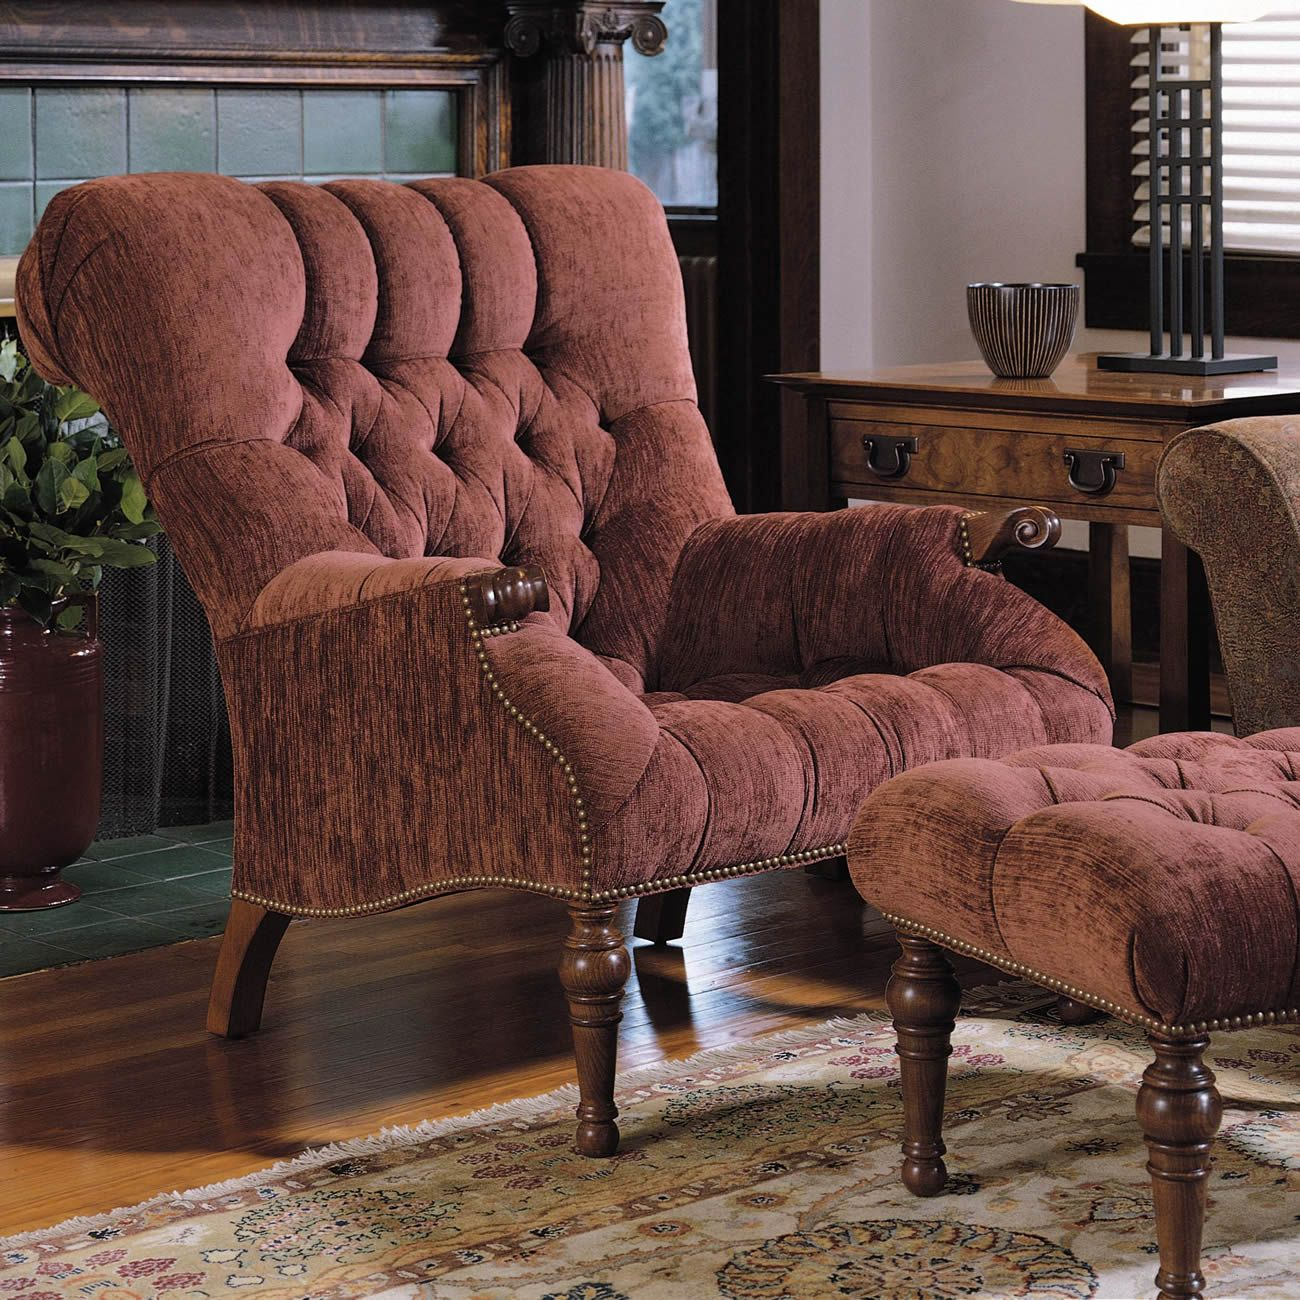 Lovely Leopold Chair By Stickley. The Most Comfortable Chair I Ever Sat In.  OurProducts_Detailsu2014Stickley Furniture, Since